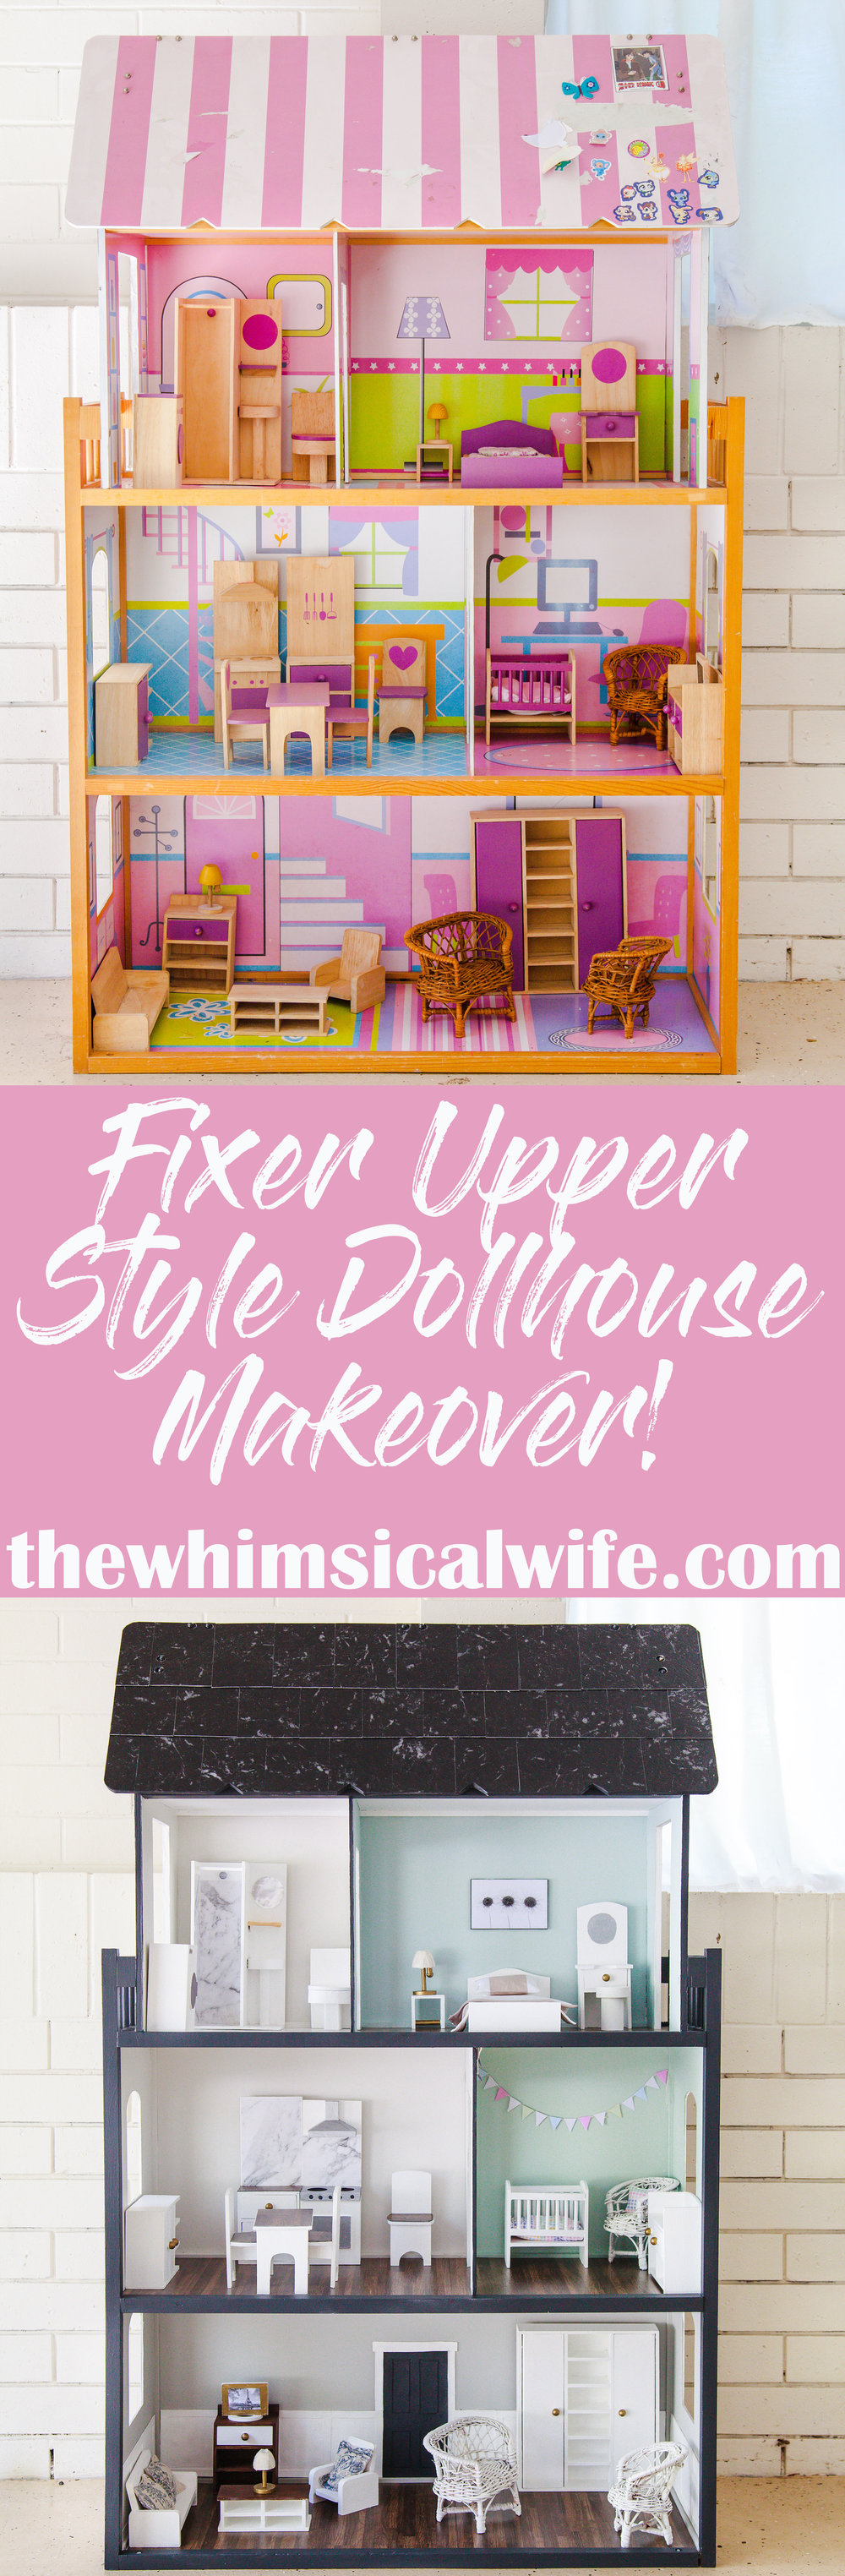 My Fixer Upper Style Dollhouse Makeover + Video | The Whimsical Wife